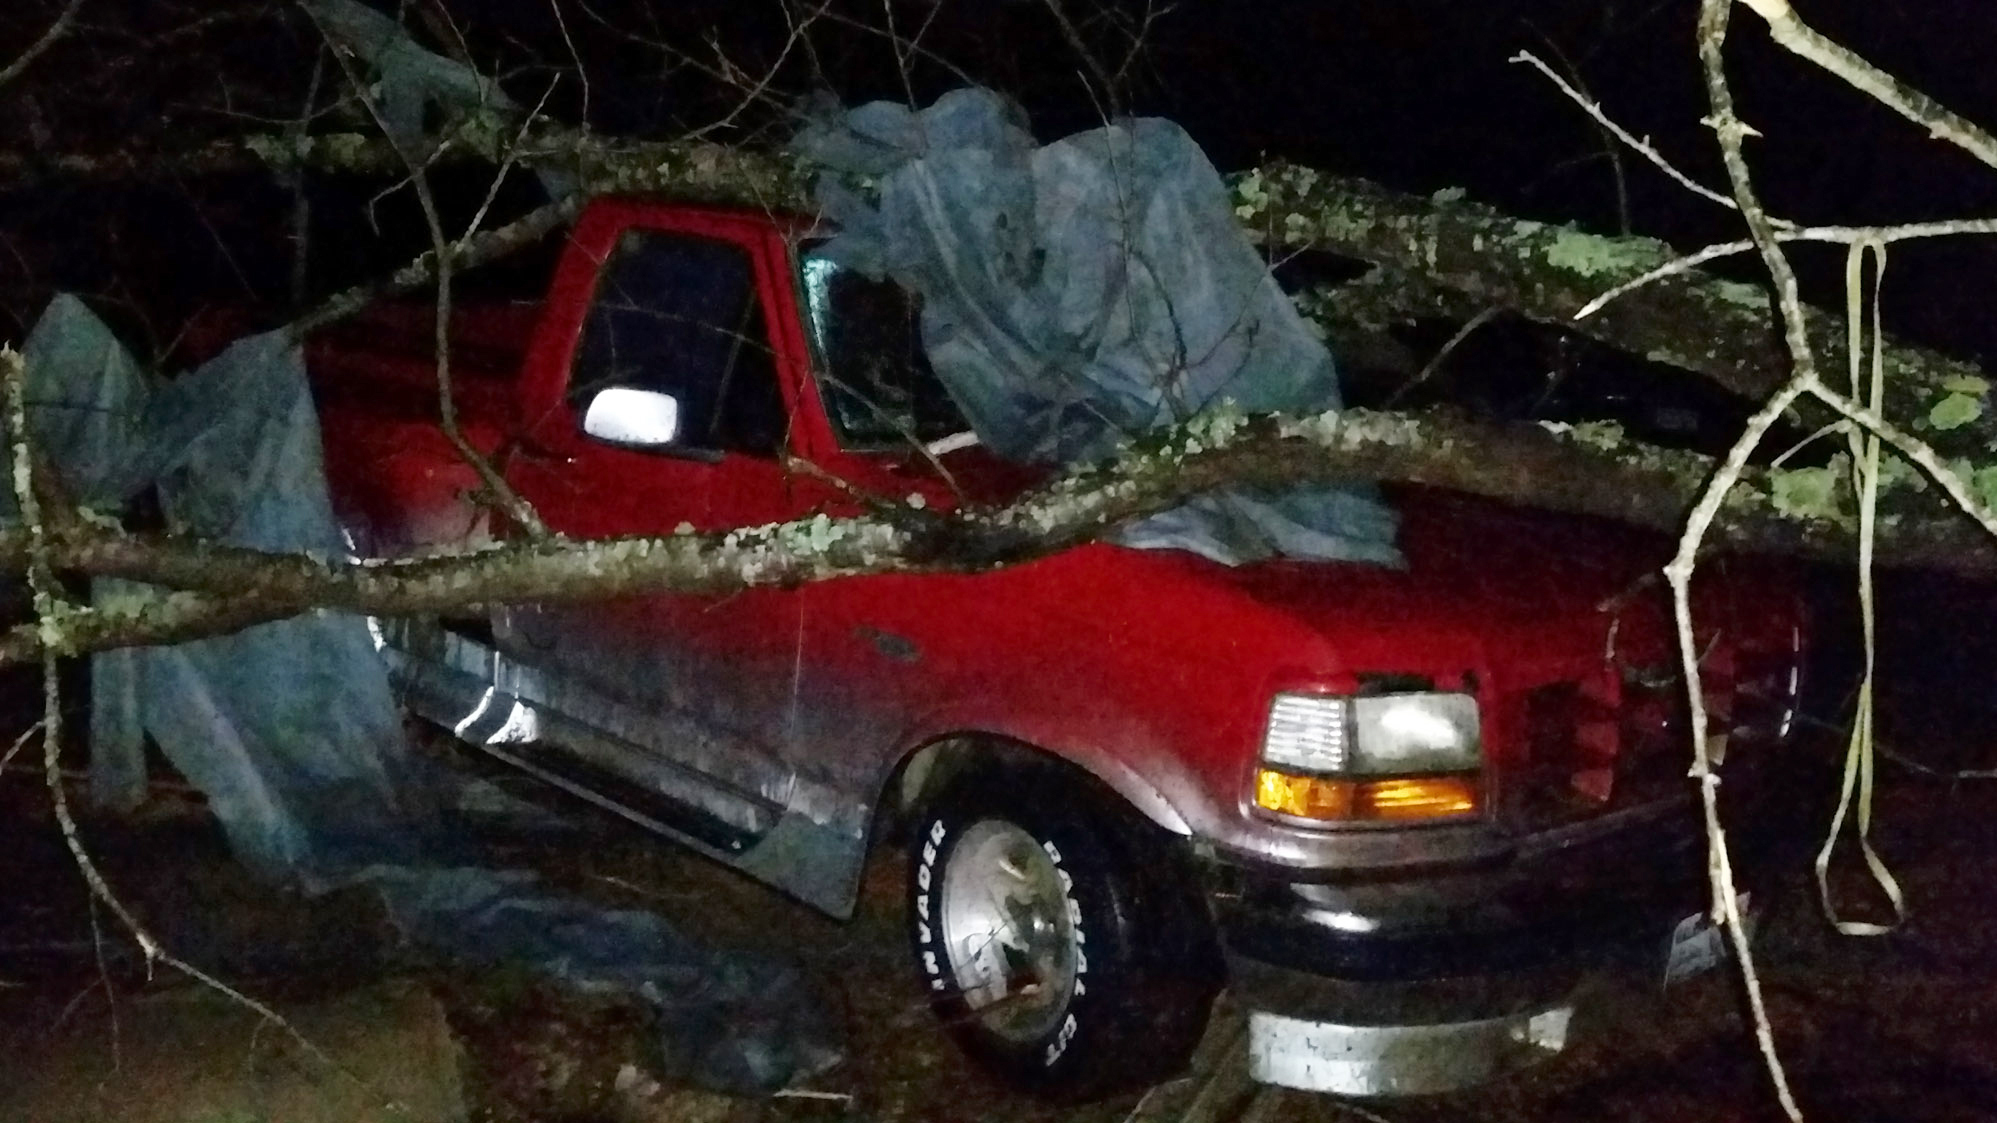 Tornadoes kill at least 3 in southern USA state